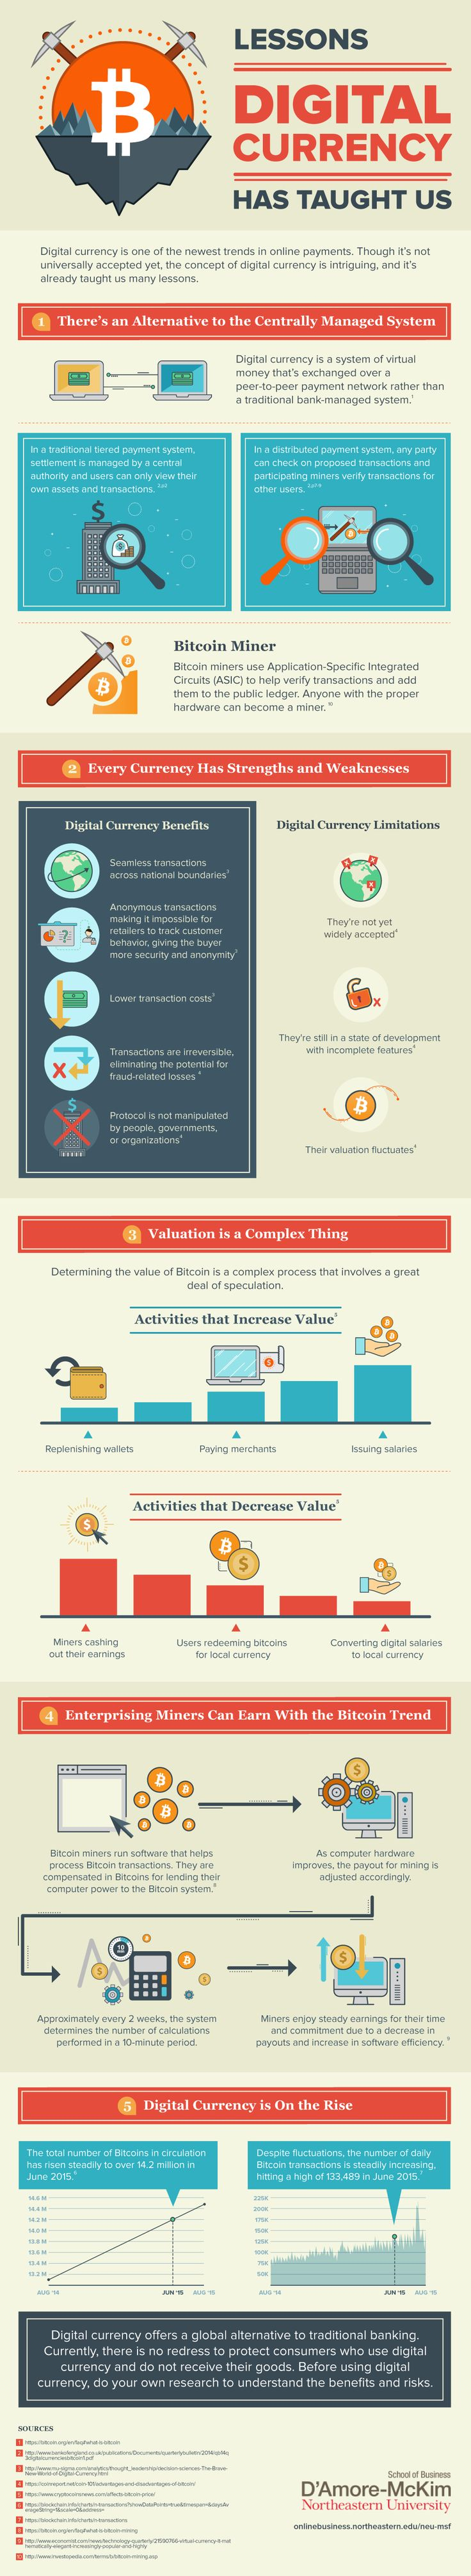 Lessons Digital Currency Has Taught Us #Infographic #DigitalCurrency